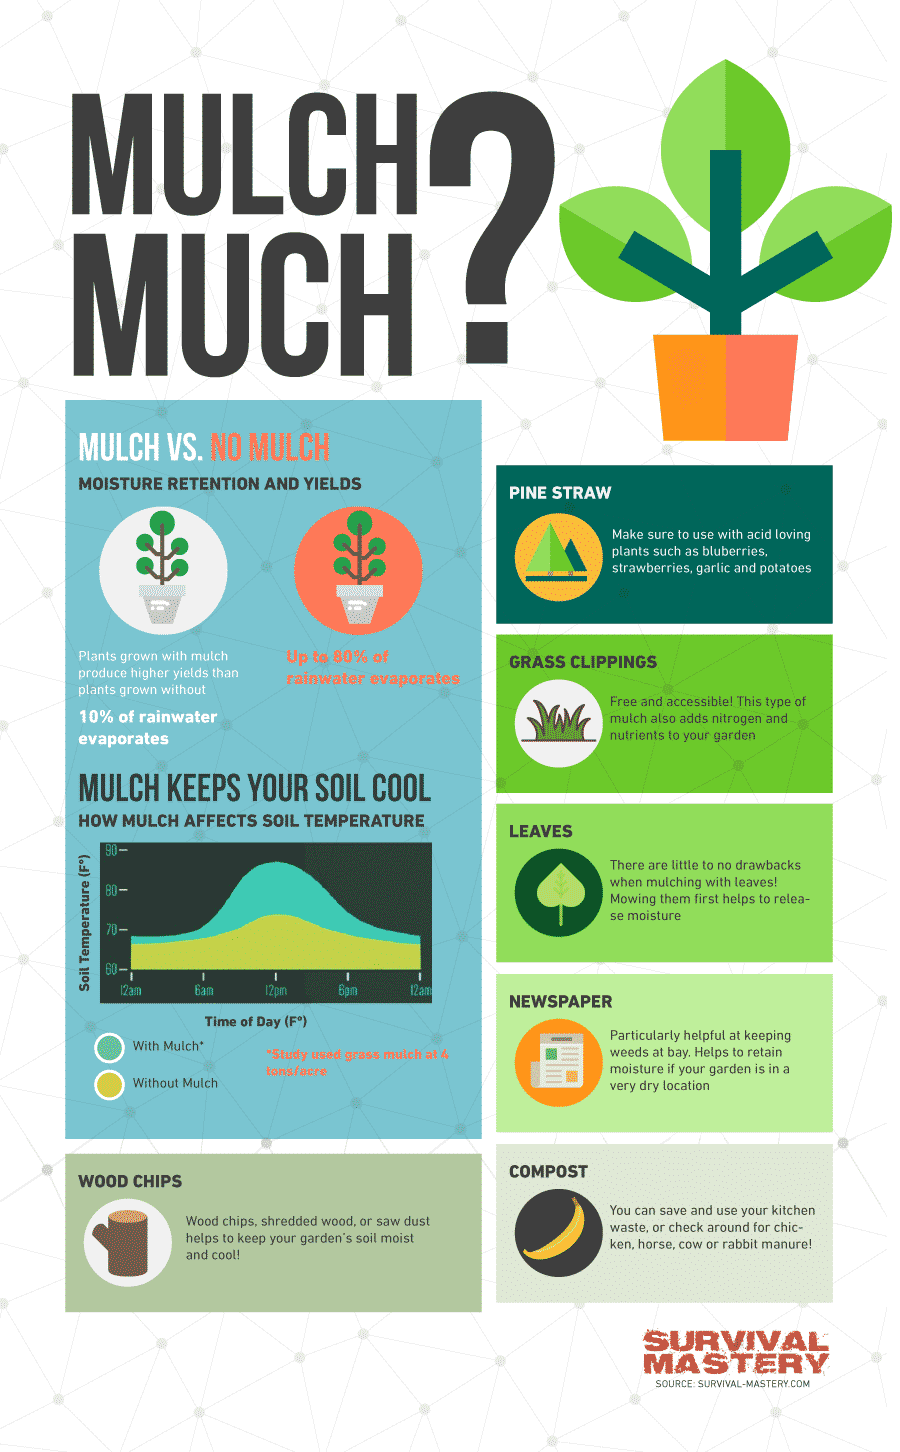 Mulch much infographic